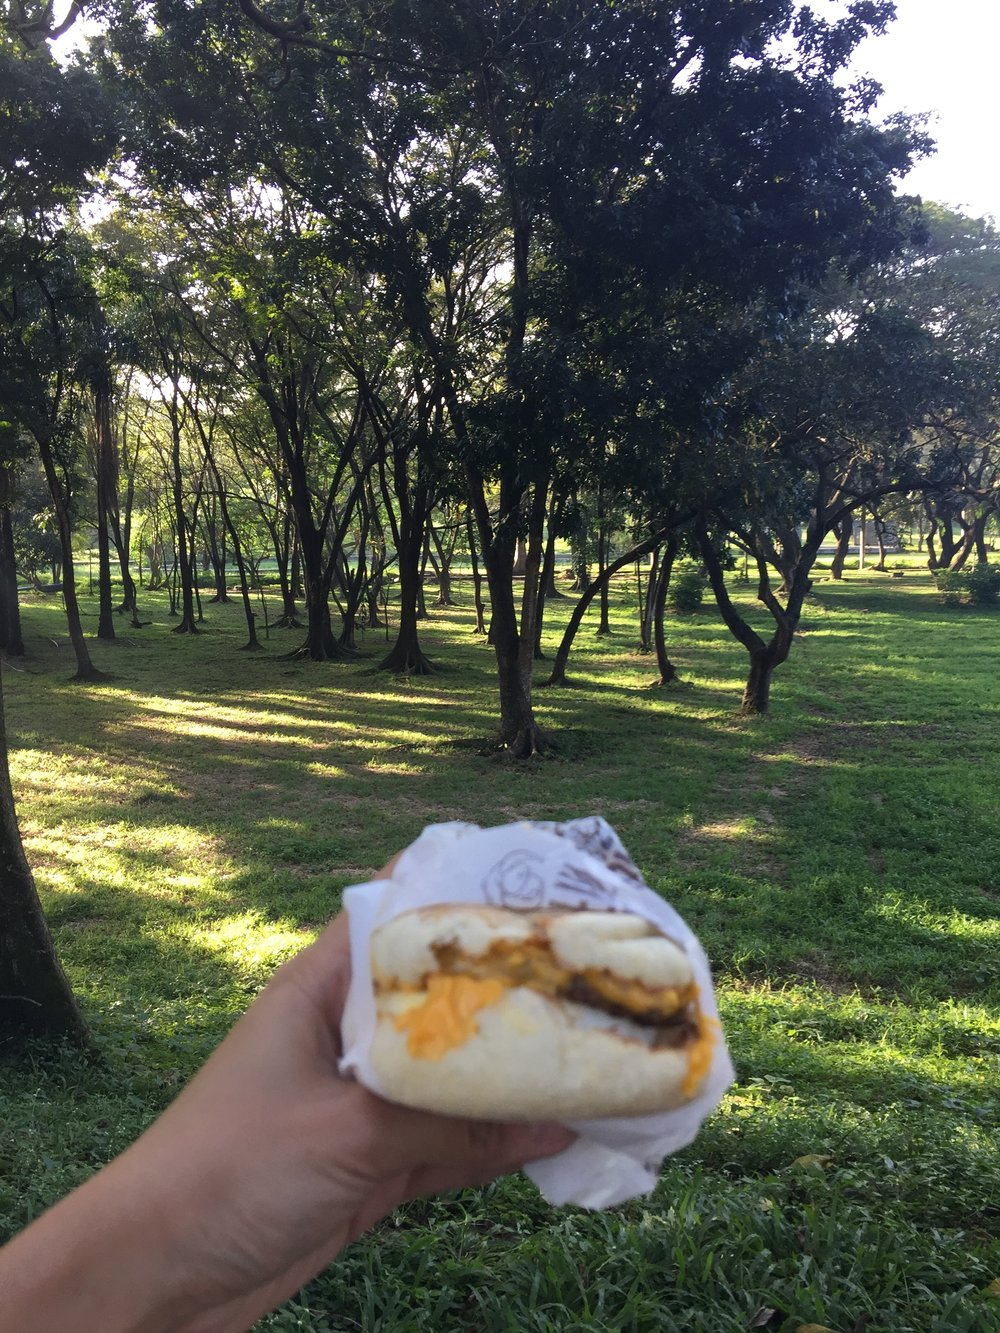 I ate my Sausage McMuffin with Egg al fresco.